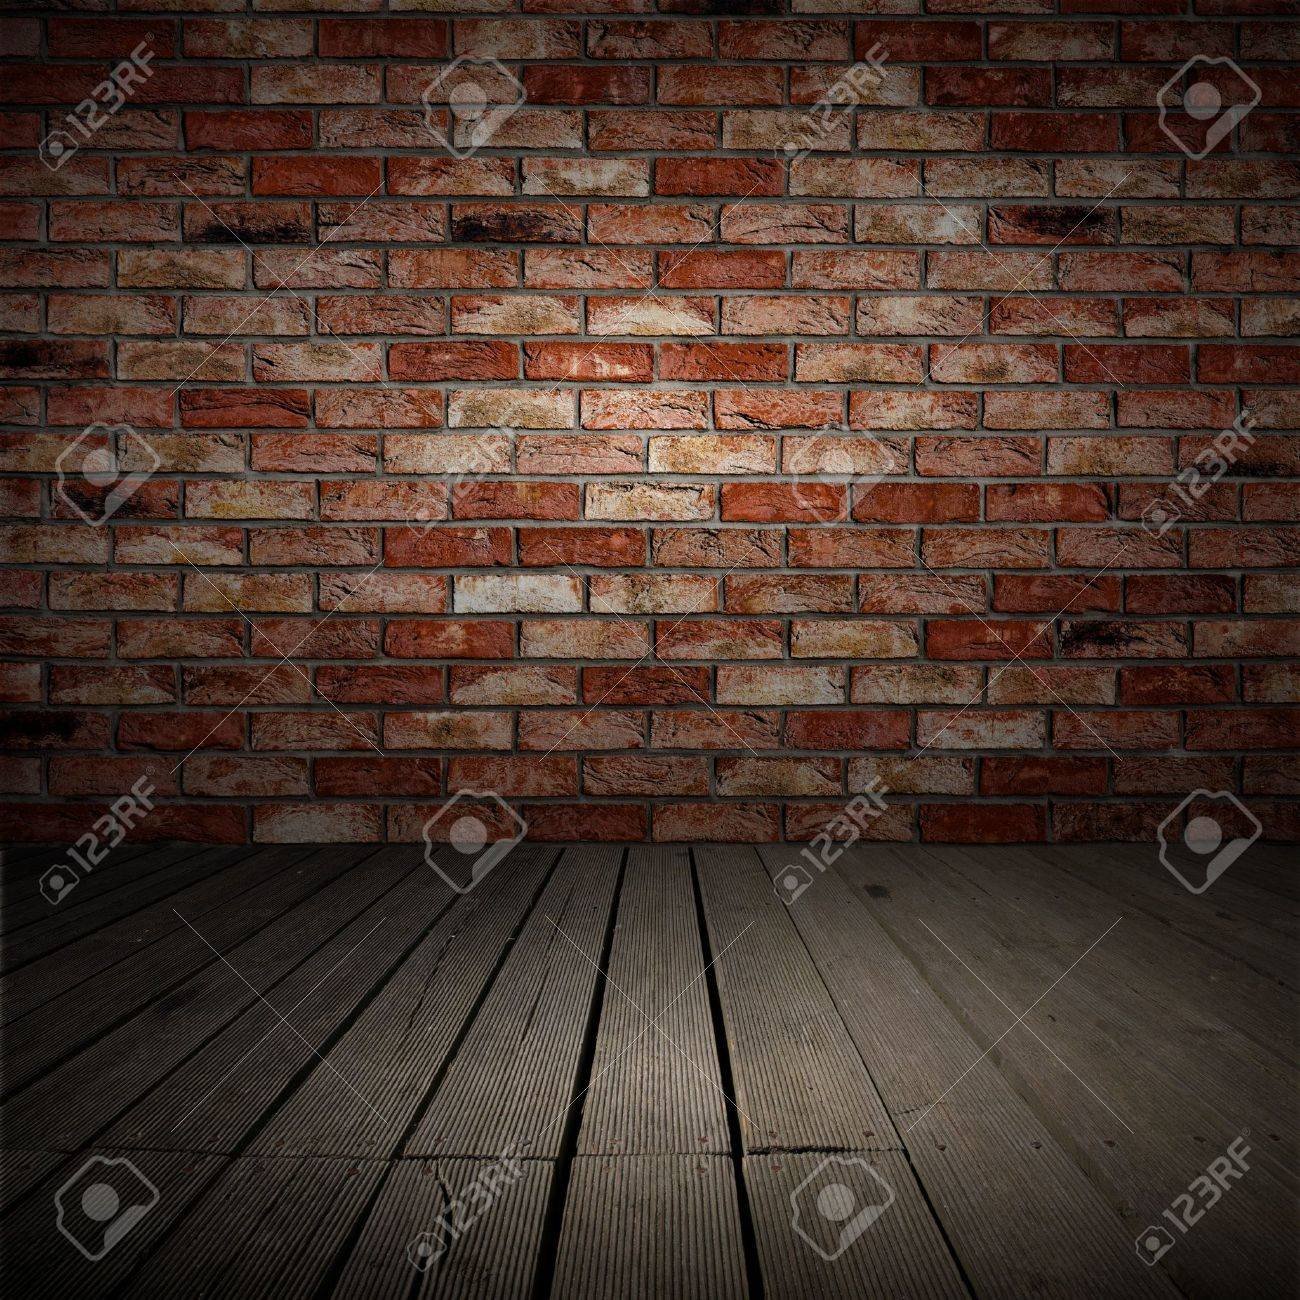 Backgroud of brick wall and wood planks in old interior Stock Photo - 11362495